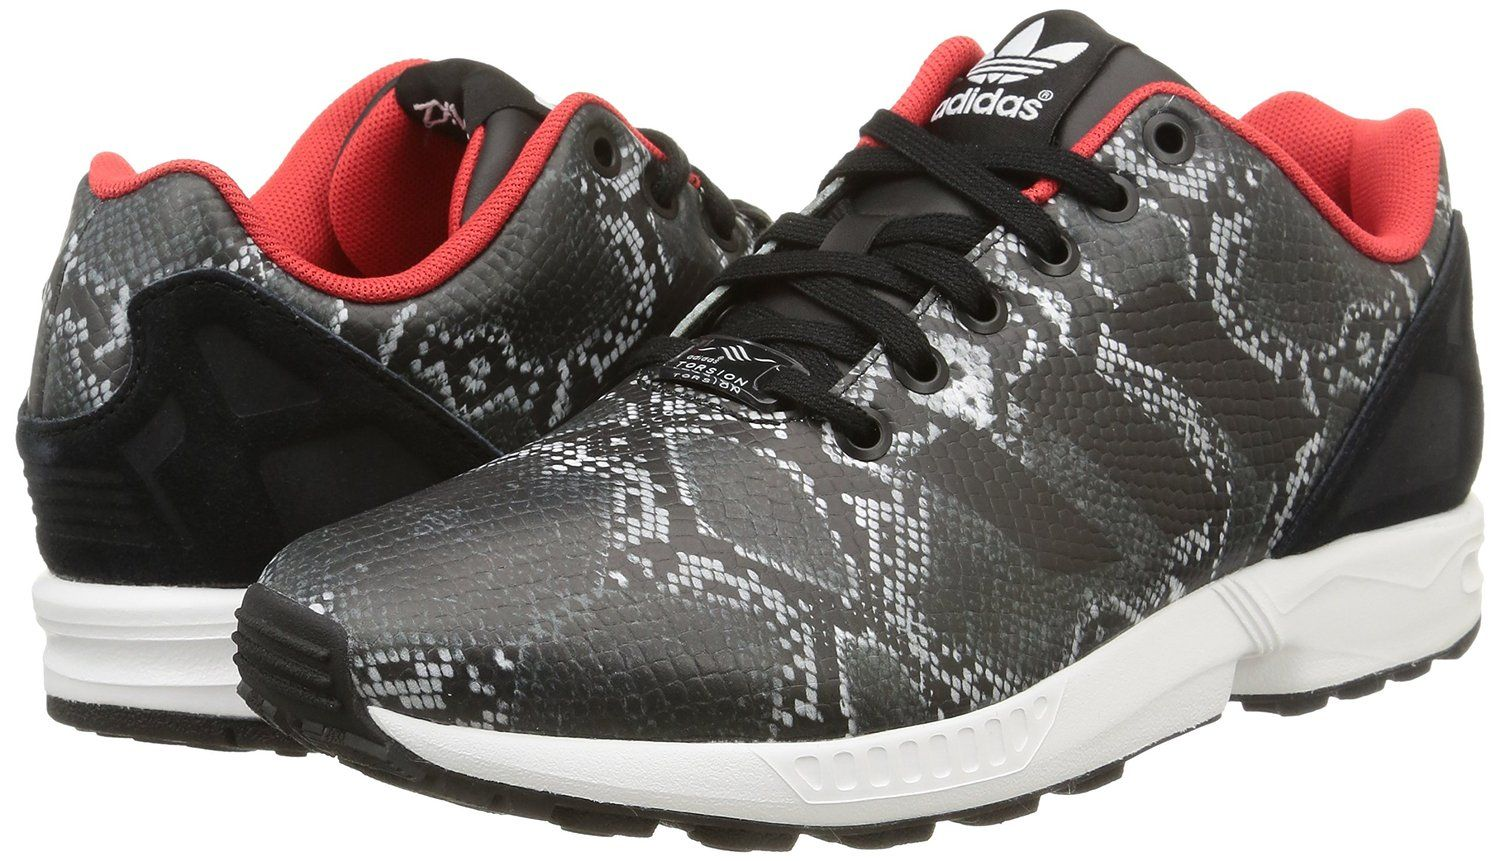 chaussures de sport cbace f6ad9 Adidas Zx Flux B35310r | Adidas Promotion | Pinterest ...